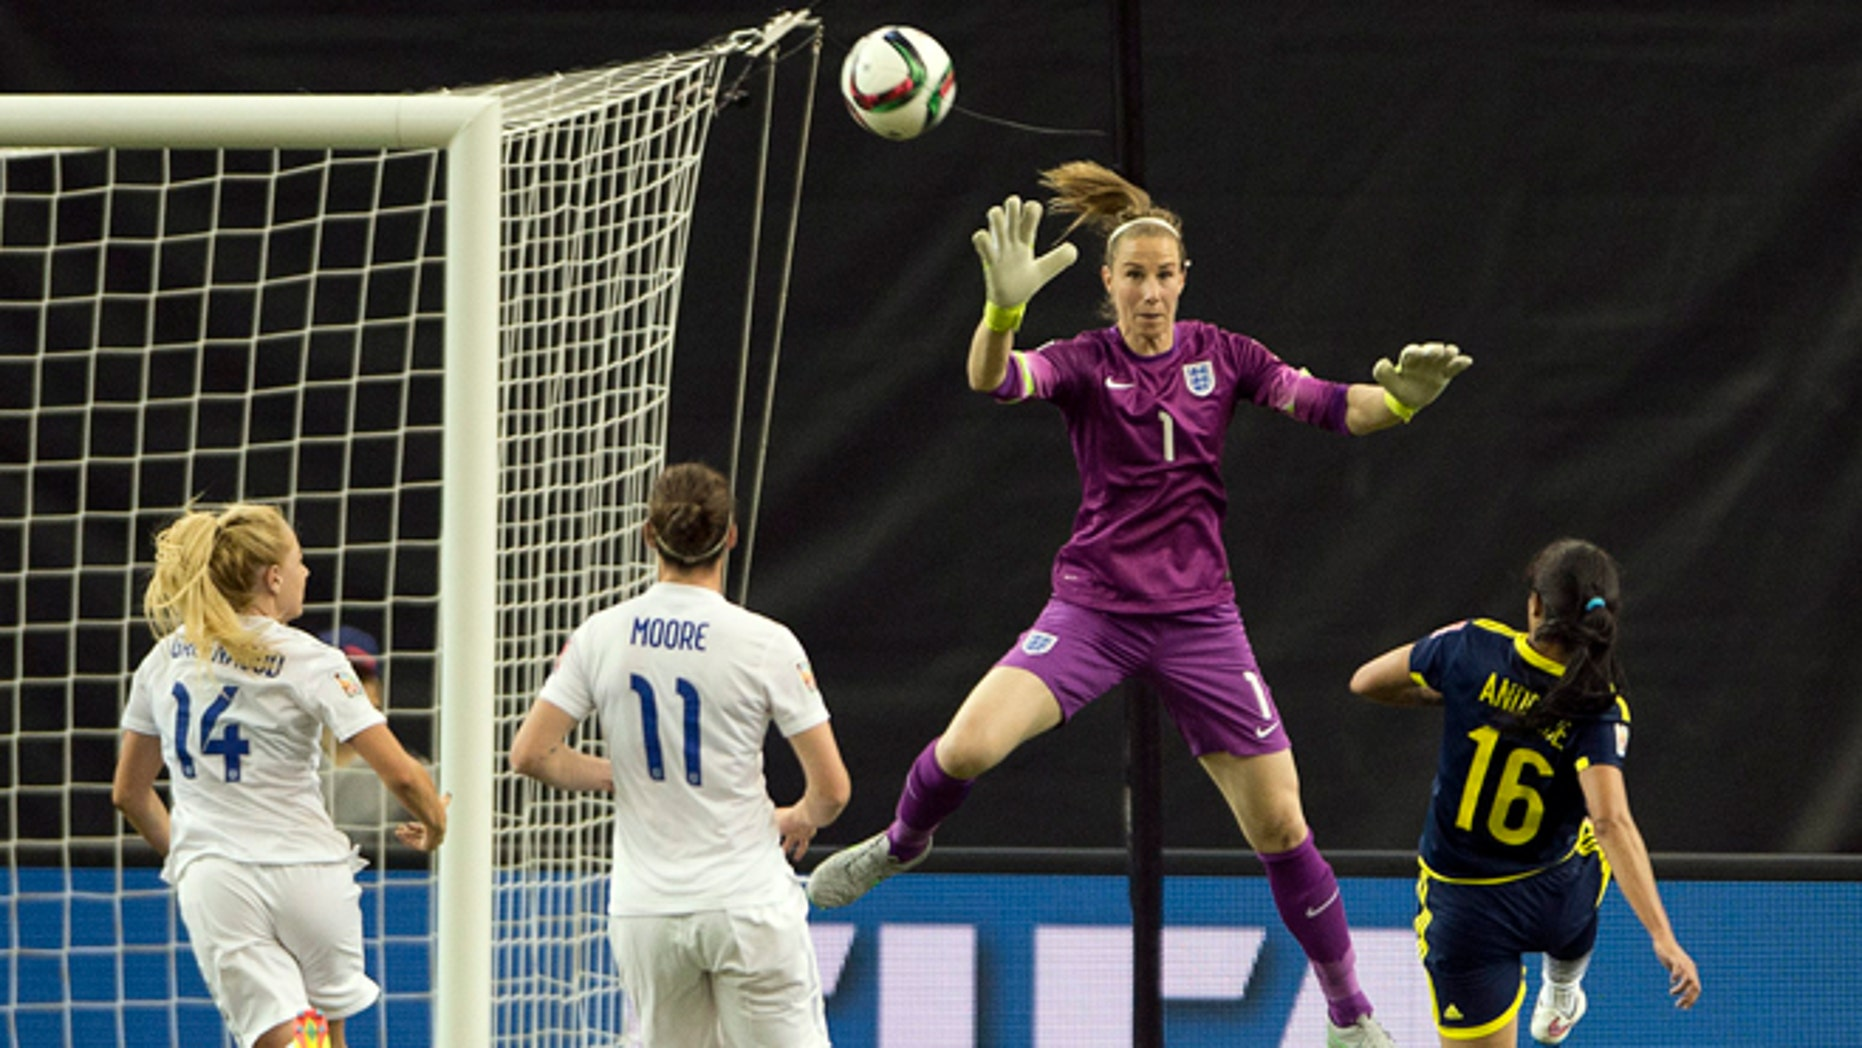 Colombia's Lady Andrade scores on England's goalkeeper Karen Bardsley as England's Alex Greenwood, left, and Jode Moore look on during the second half of a FIFA Women's World Cup soccer match, Wednesday, June 17, 2015, in Montreal, Canada. (Ryan Remiorz/The Canadian Press via AP) MANDATORY CREDIT